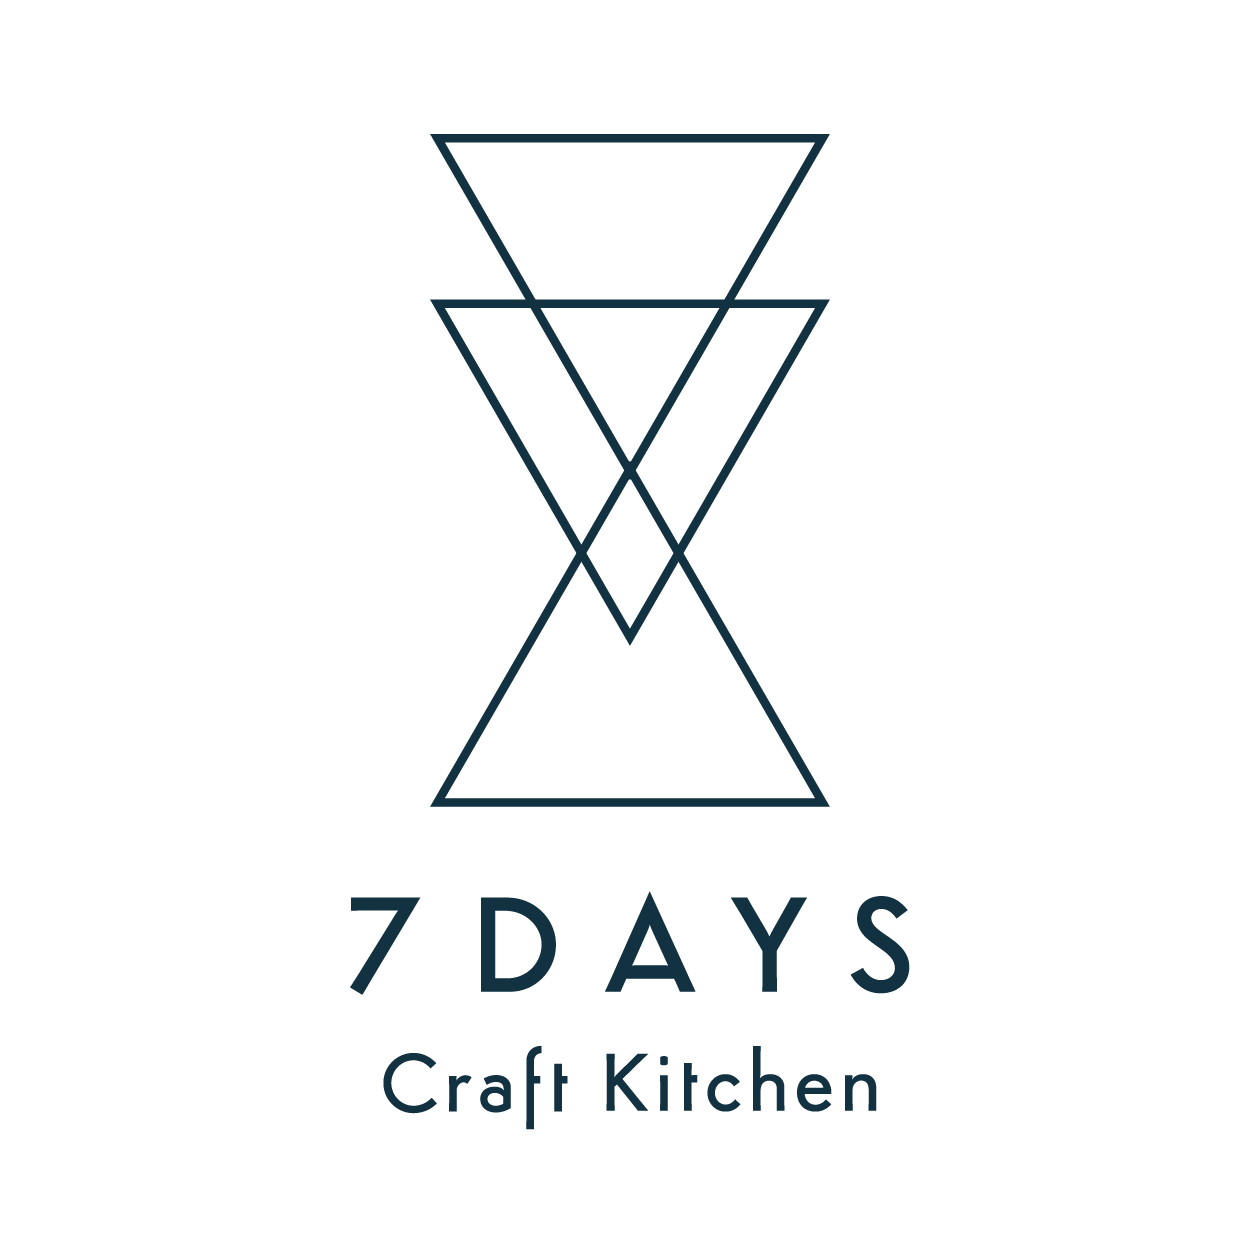 7 Days Craft Kitchen